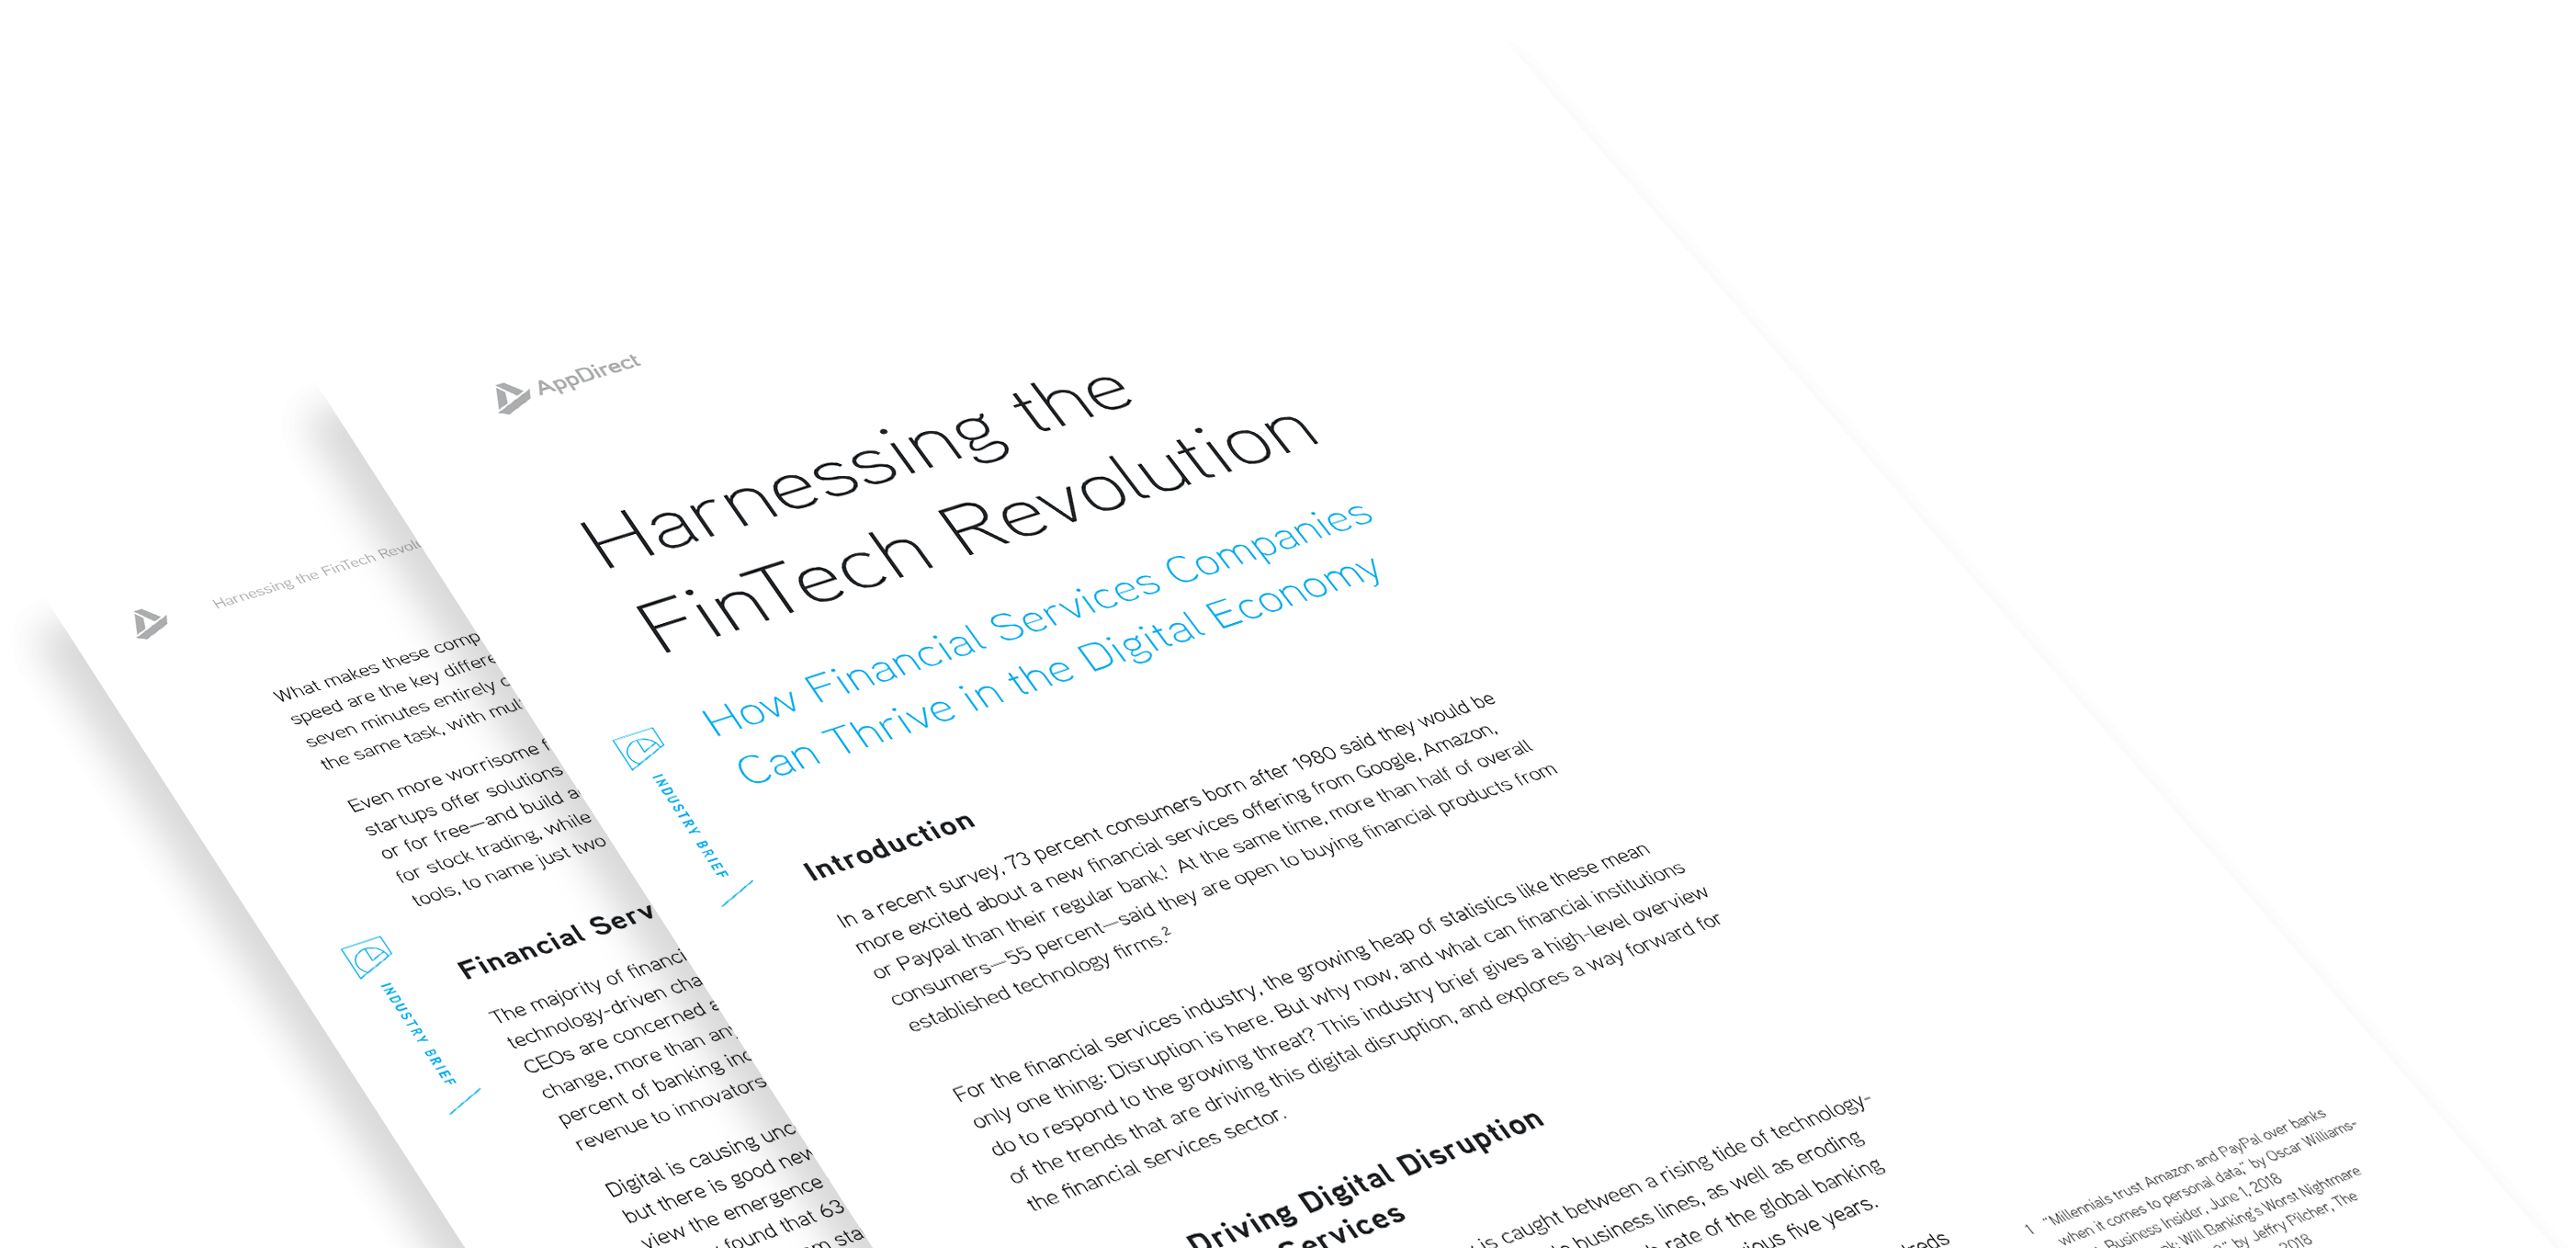 Harnessing the FinTech Revolution